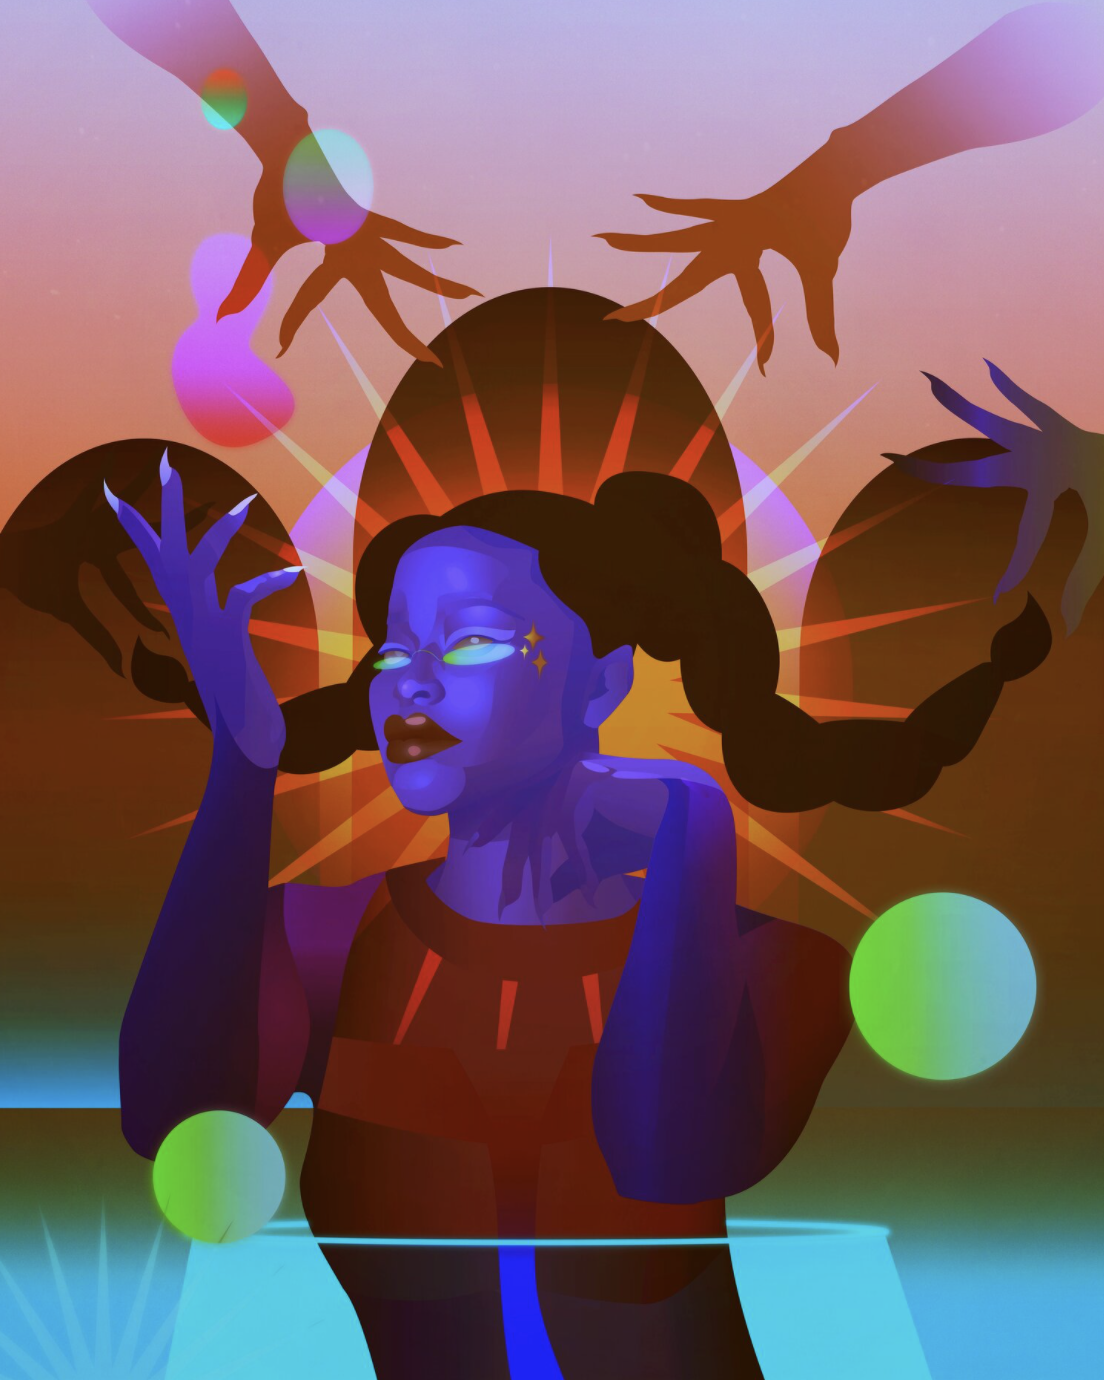 Futuristic illustration of black gilr with a purple face and platted hair